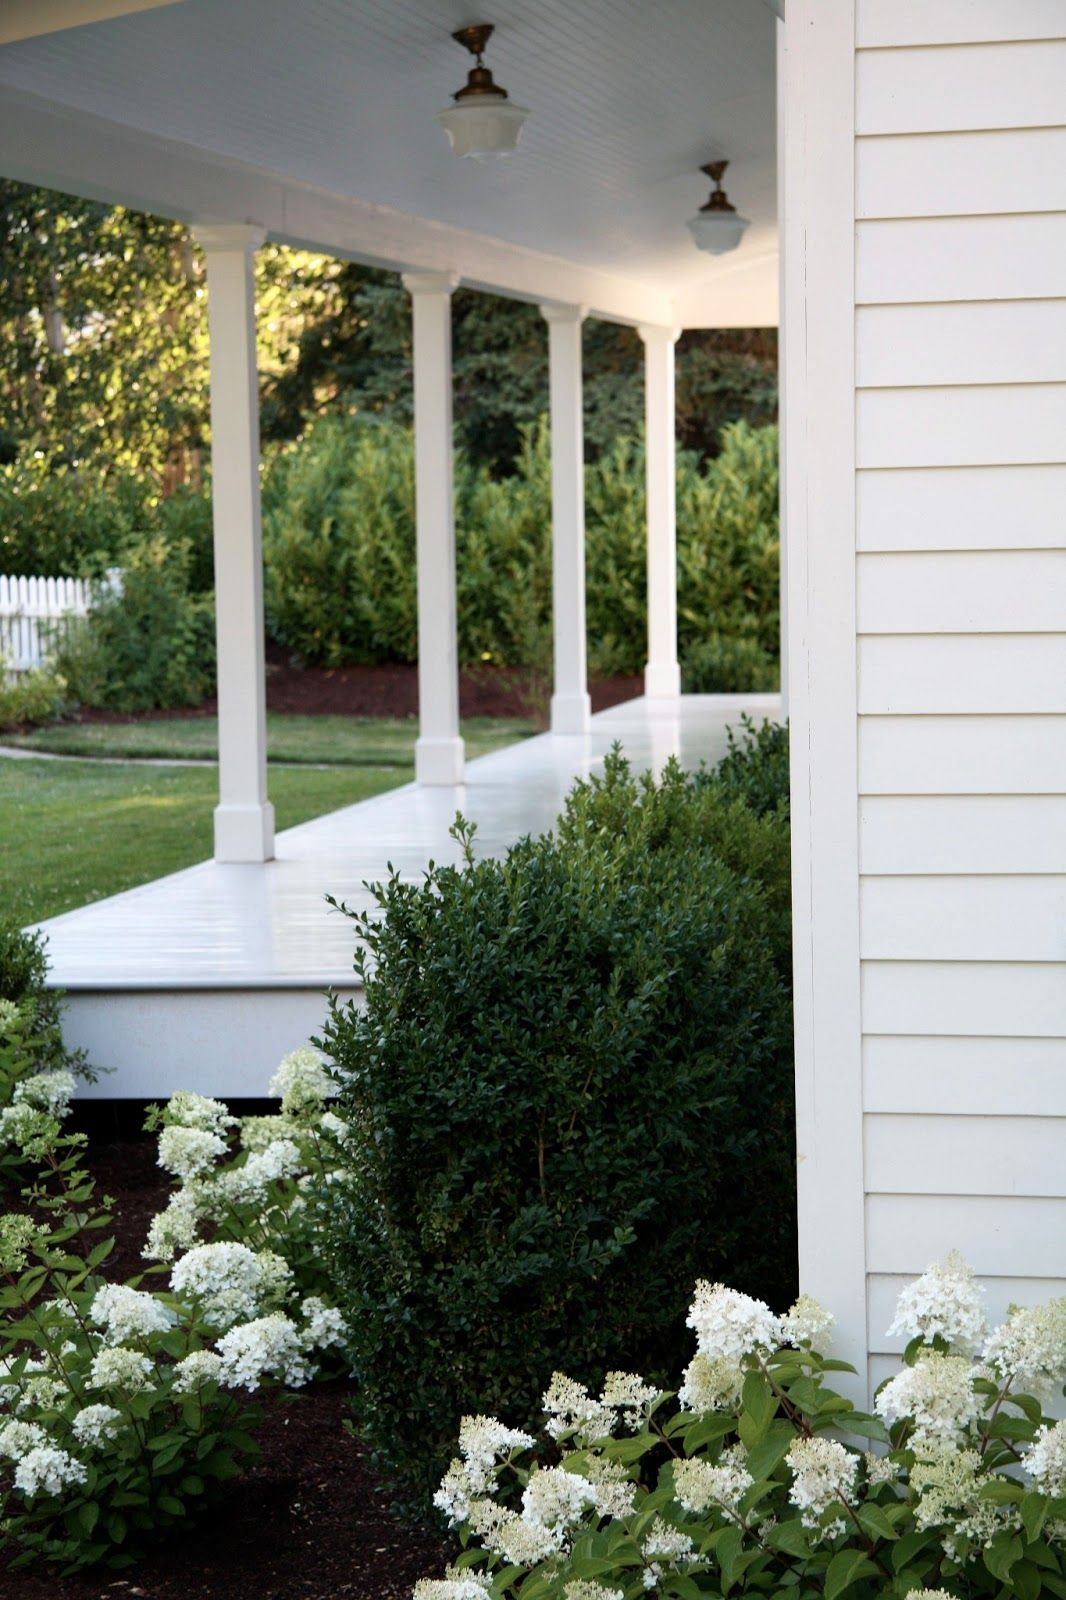 Landscaping ideas for front yard with porch  A Country Farmhouse  beautiful tour of their hydrangea gardens